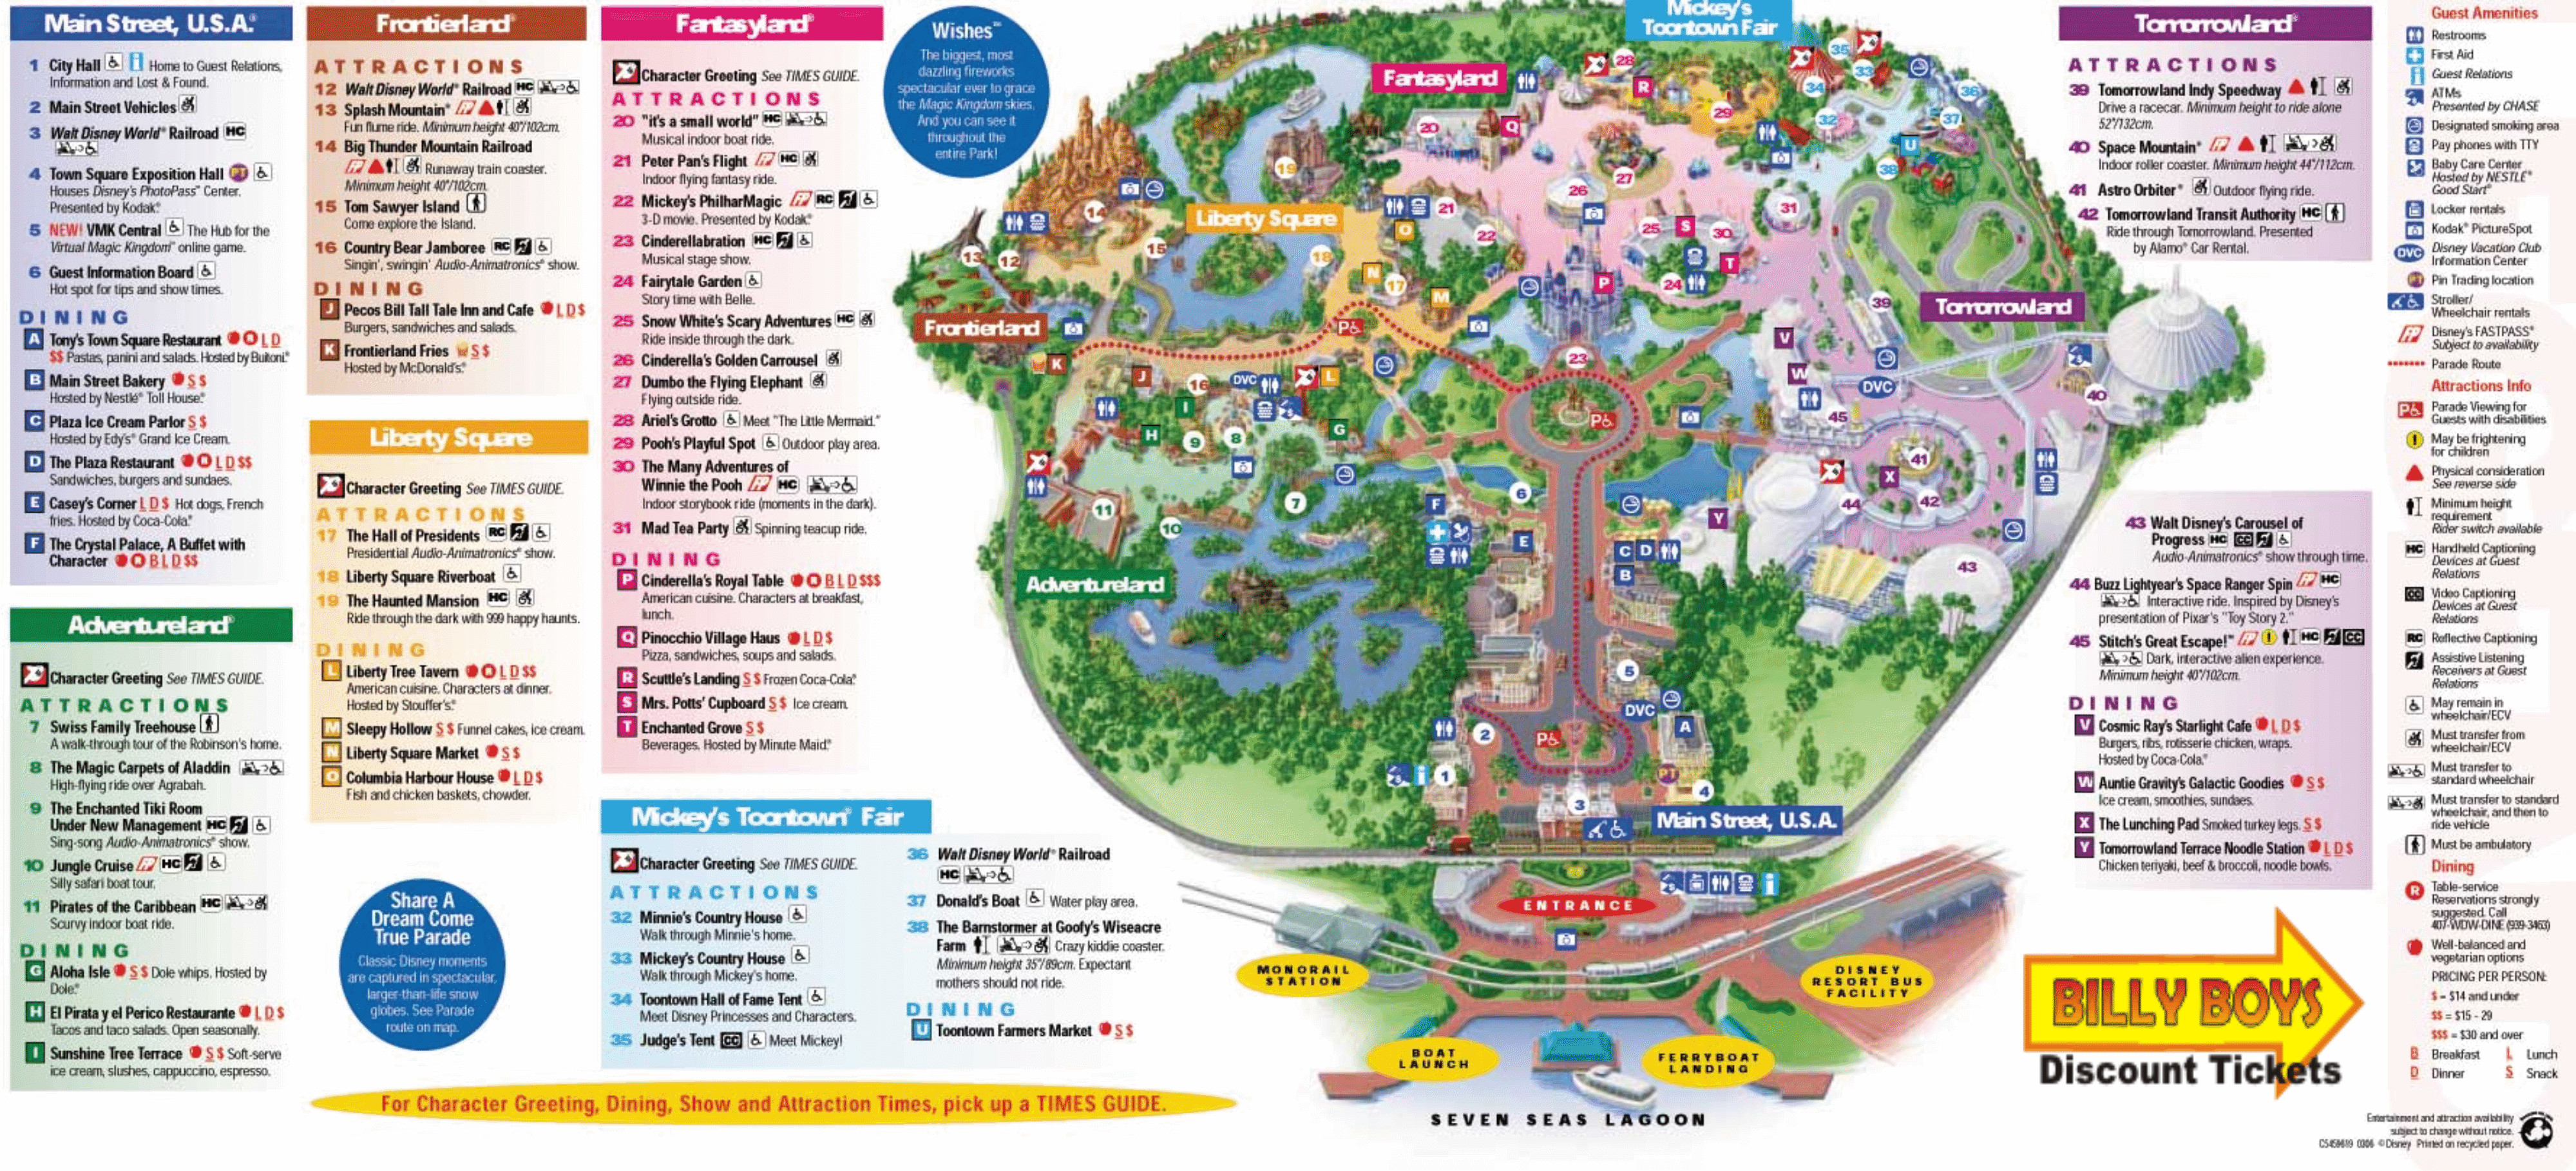 Disney World Florida Map From Ambergontrail 3 - Judecelestin2010 - Map Of Disney World In Florida